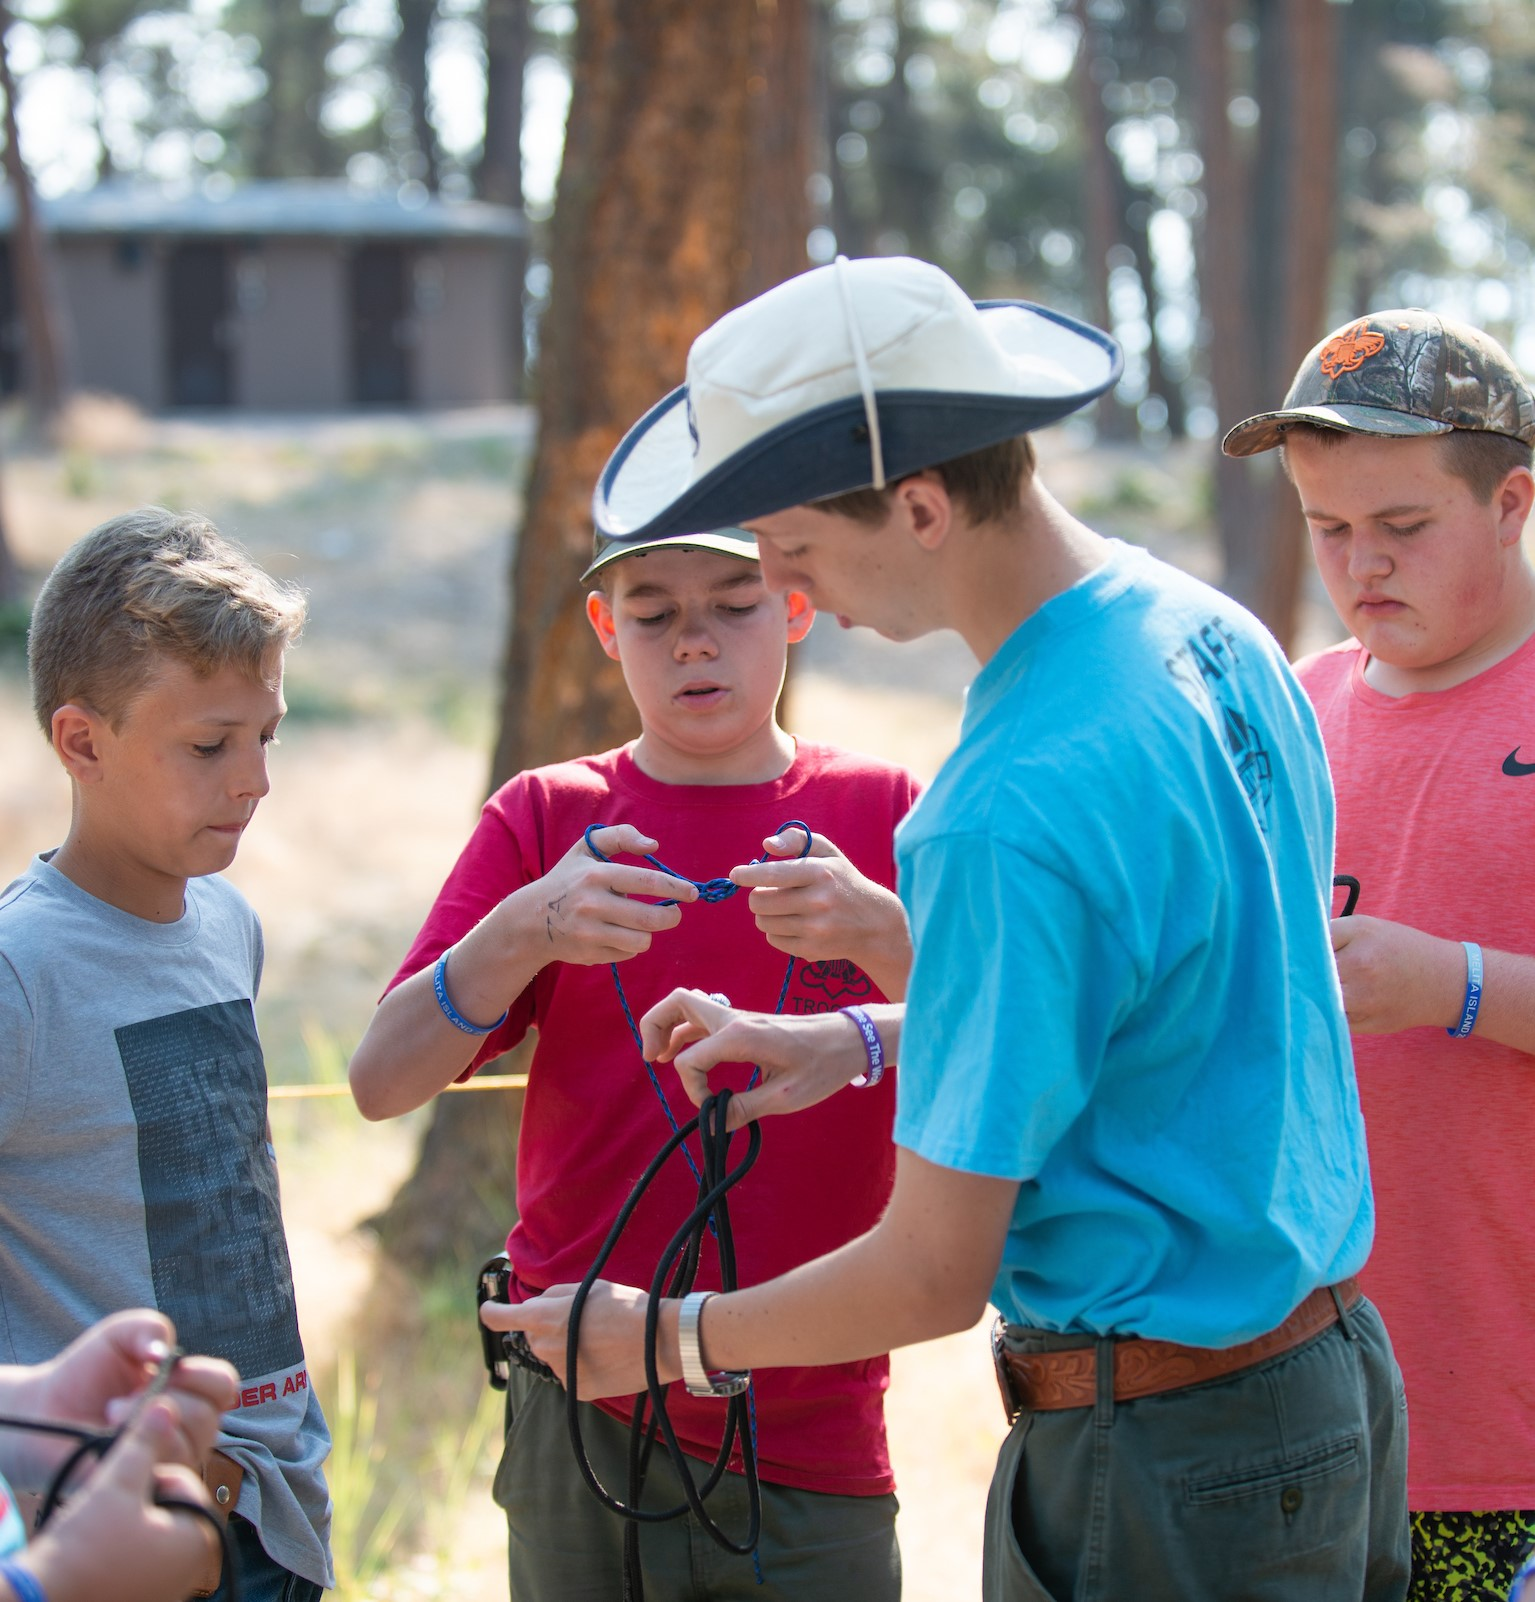 Summer camp staff teaches group of Boy Scouts how to tie a knot